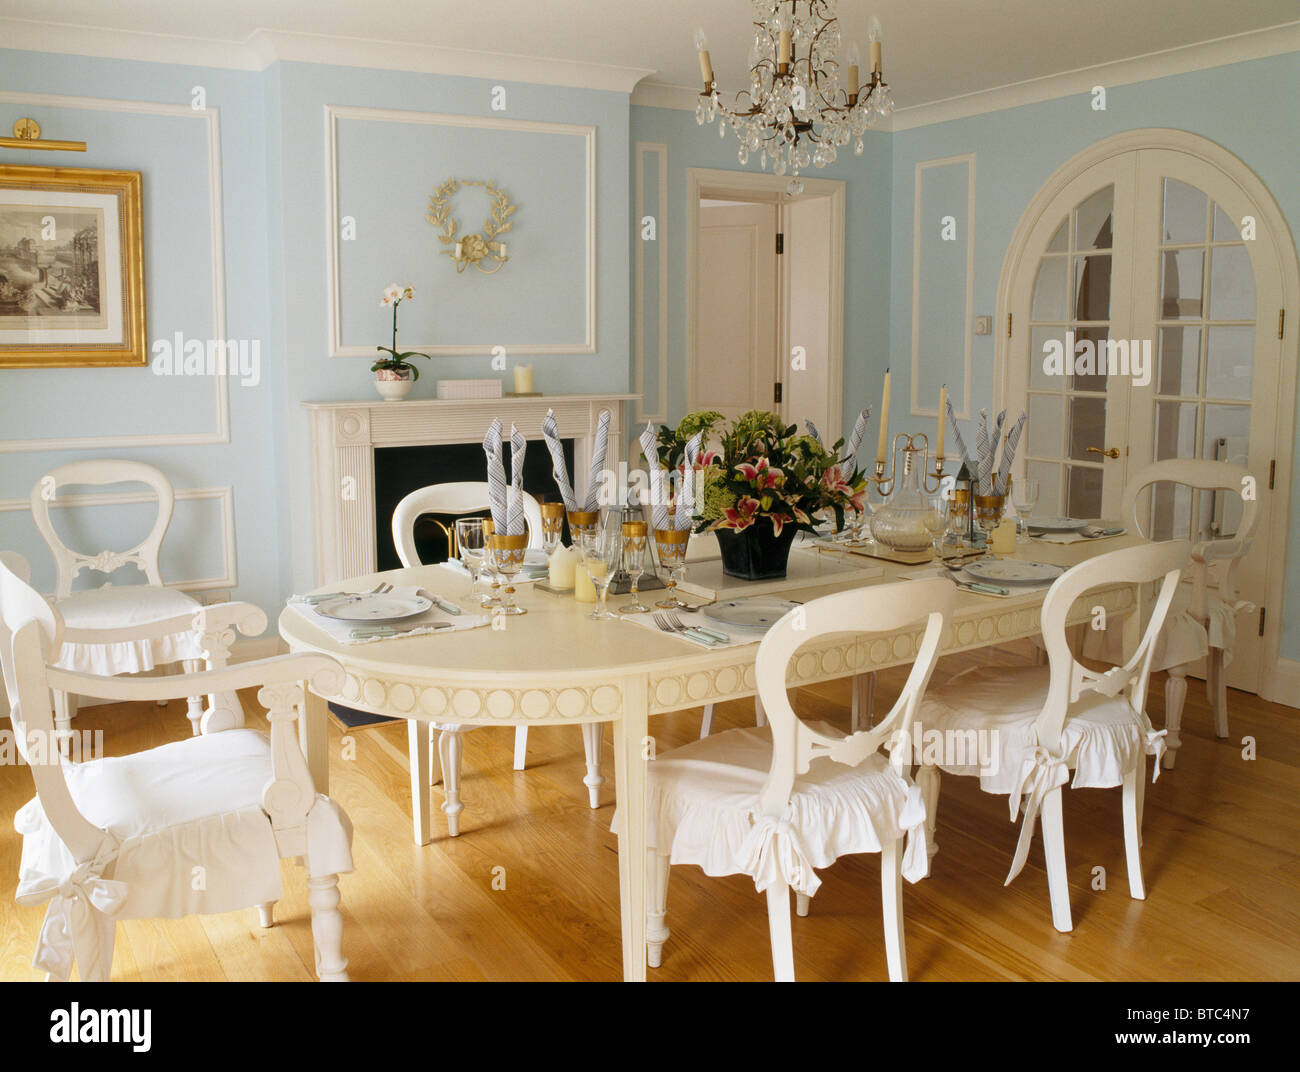 Long cream oval table and cream chairs with white cushions in pale ...